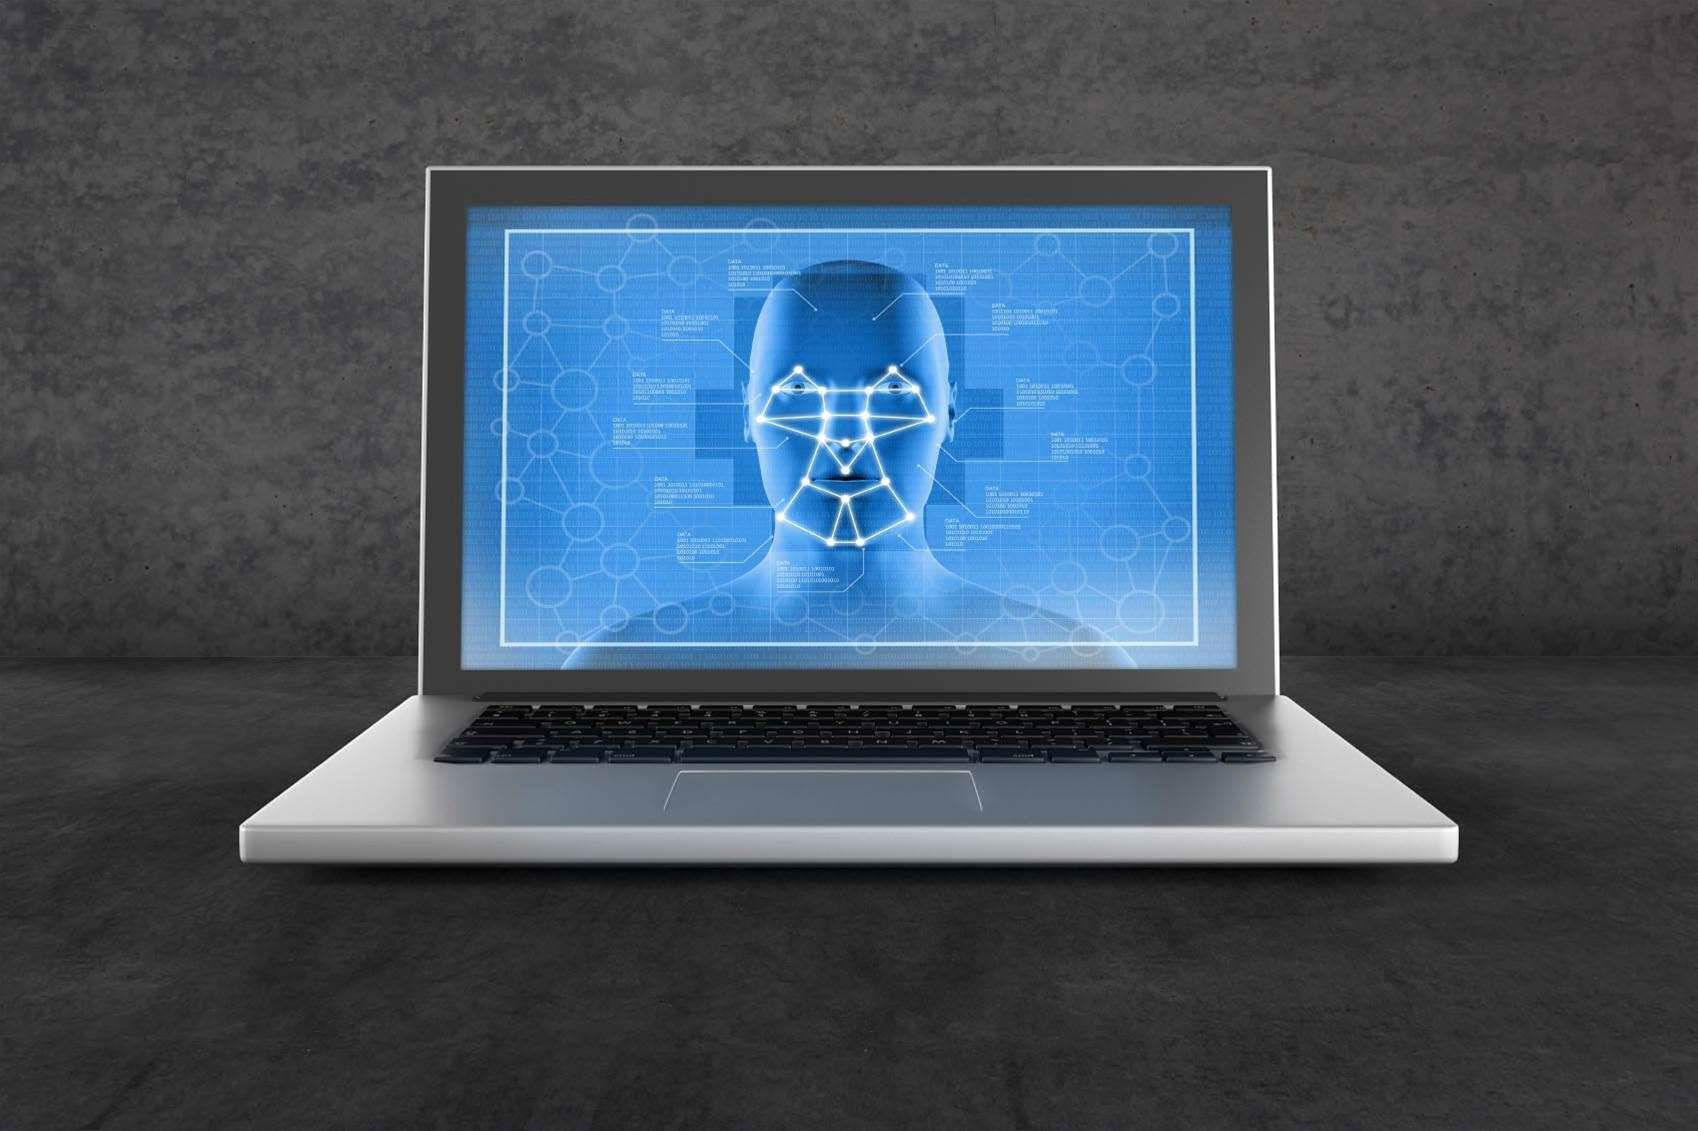 Govt seeks to allay privacy concerns over national facial recognition system